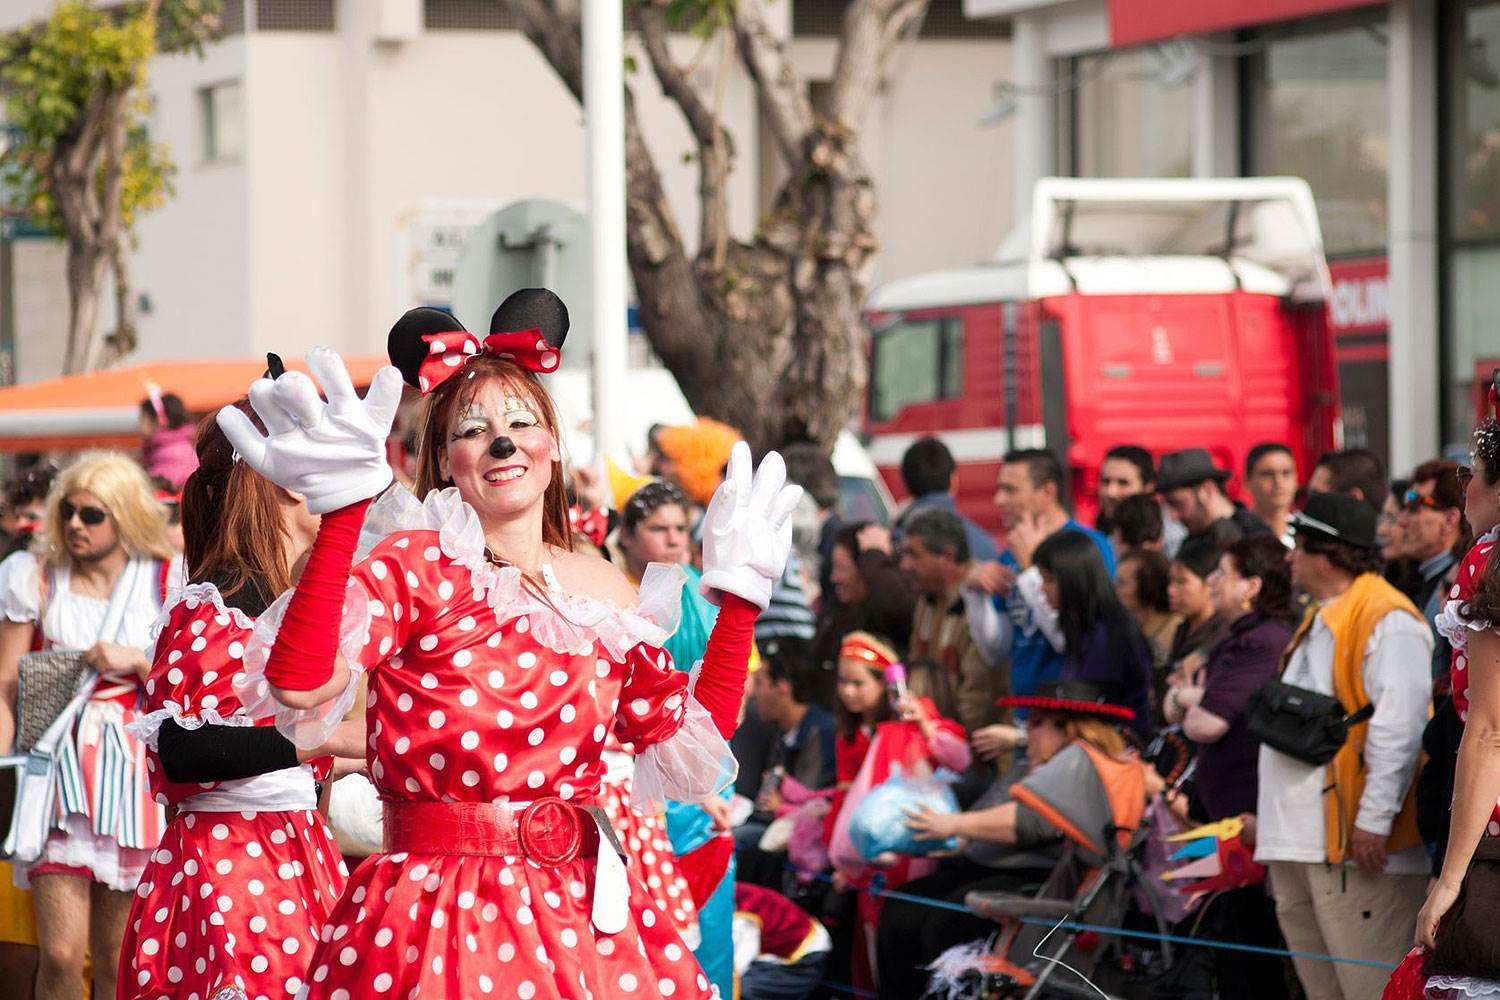 The Limassol Carnival